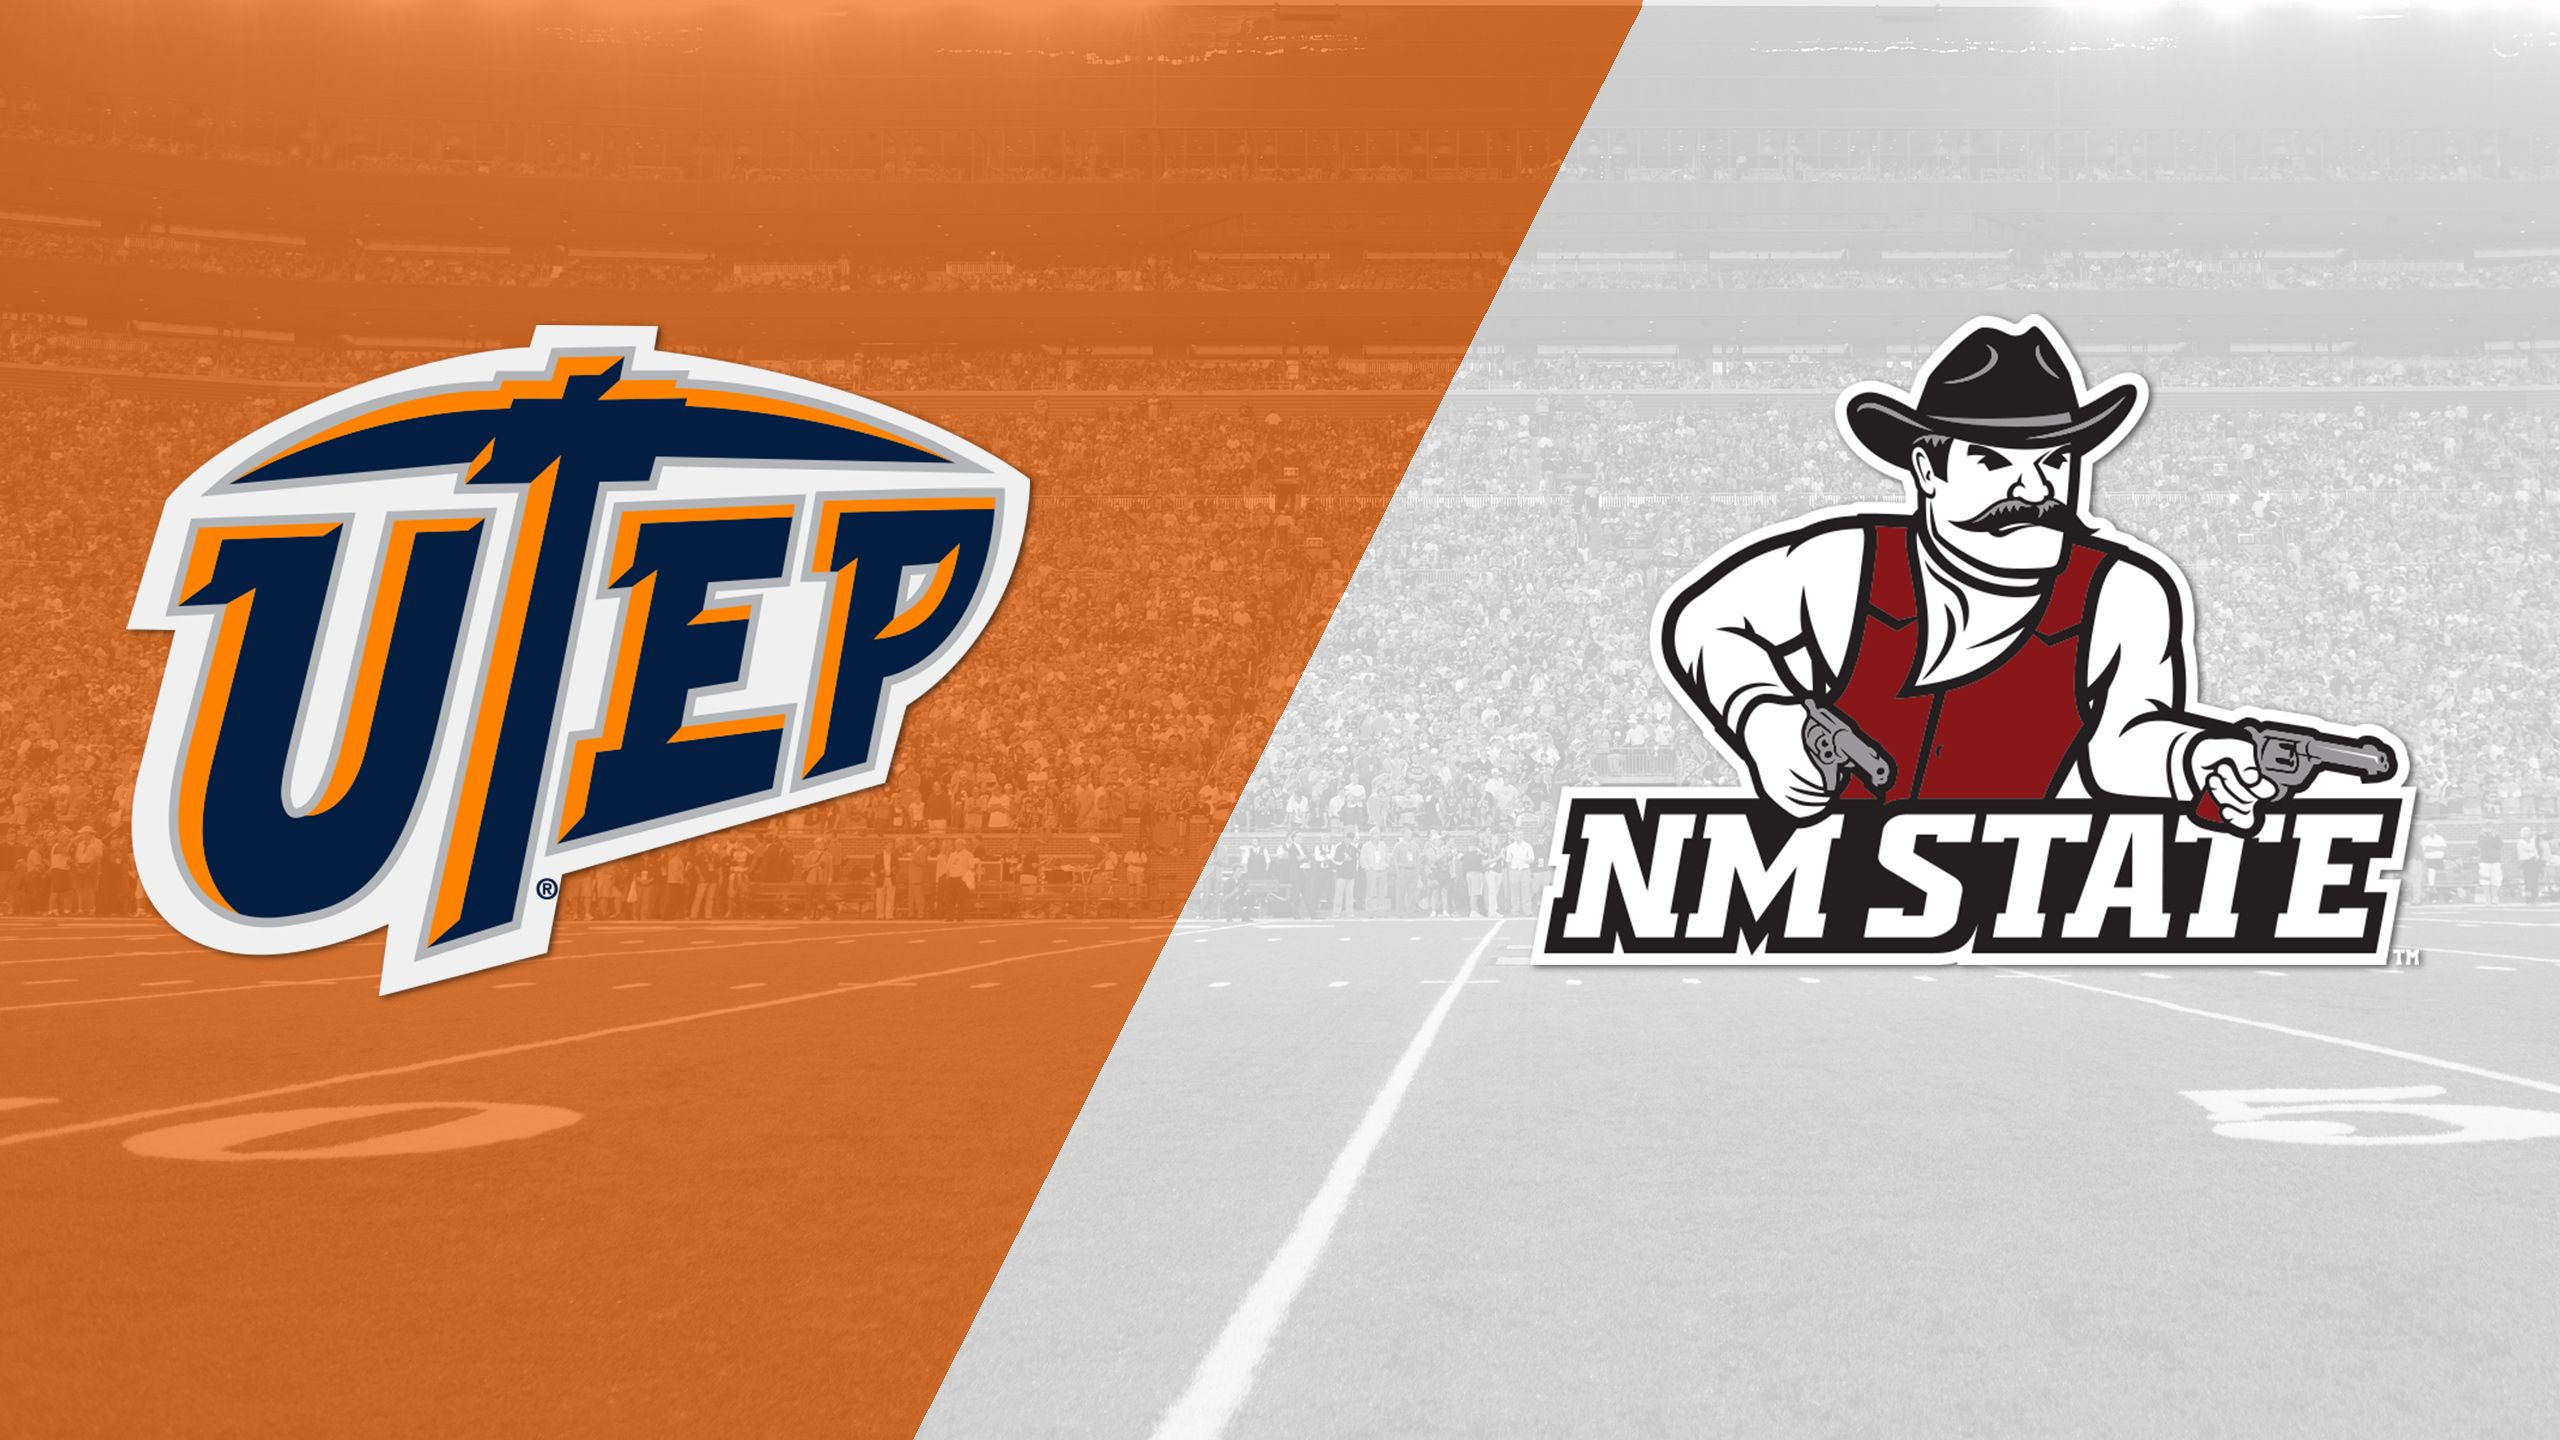 UTEP vs. New Mexico State (Football)